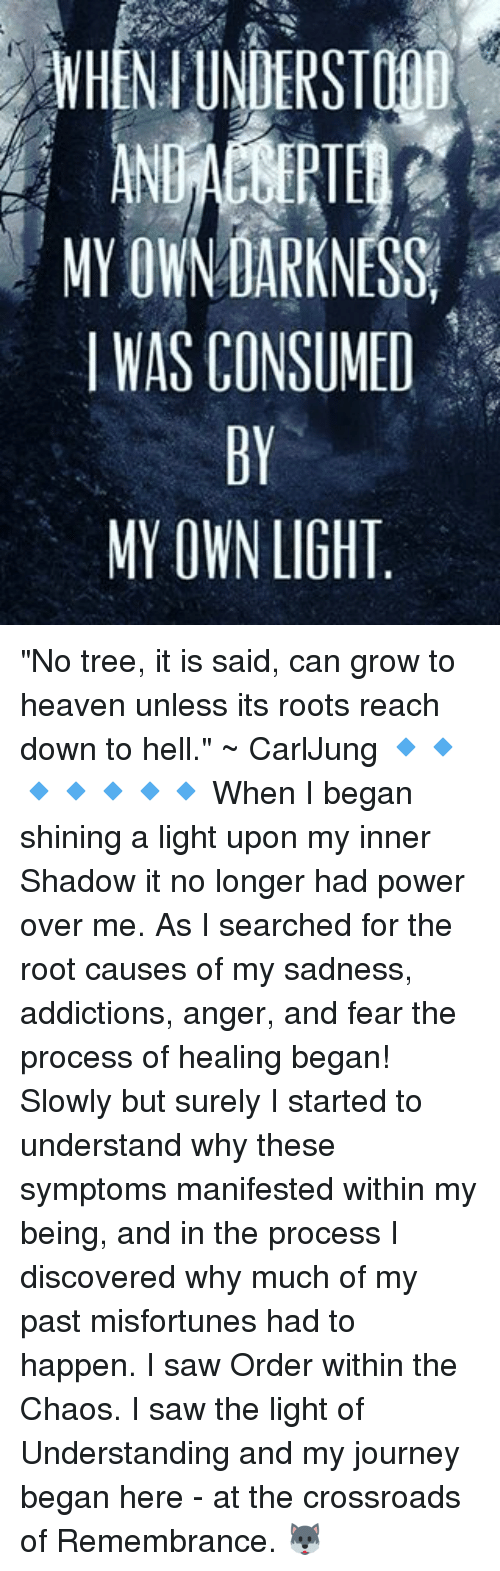 """Misfortunately: MY OWNDARKNESS,  I WAS CONSUMED  MY OWN LIGHT """"No tree, it is said, can grow to heaven unless its roots reach down to hell."""" ~ CarlJung 🔹🔹🔹🔹🔹🔹🔹 When I began shining a light upon my inner Shadow it no longer had power over me. As I searched for the root causes of my sadness, addictions, anger, and fear the process of healing began! Slowly but surely I started to understand why these symptoms manifested within my being, and in the process I discovered why much of my past misfortunes had to happen. I saw Order within the Chaos. I saw the light of Understanding and my journey began here - at the crossroads of Remembrance. 🐺"""